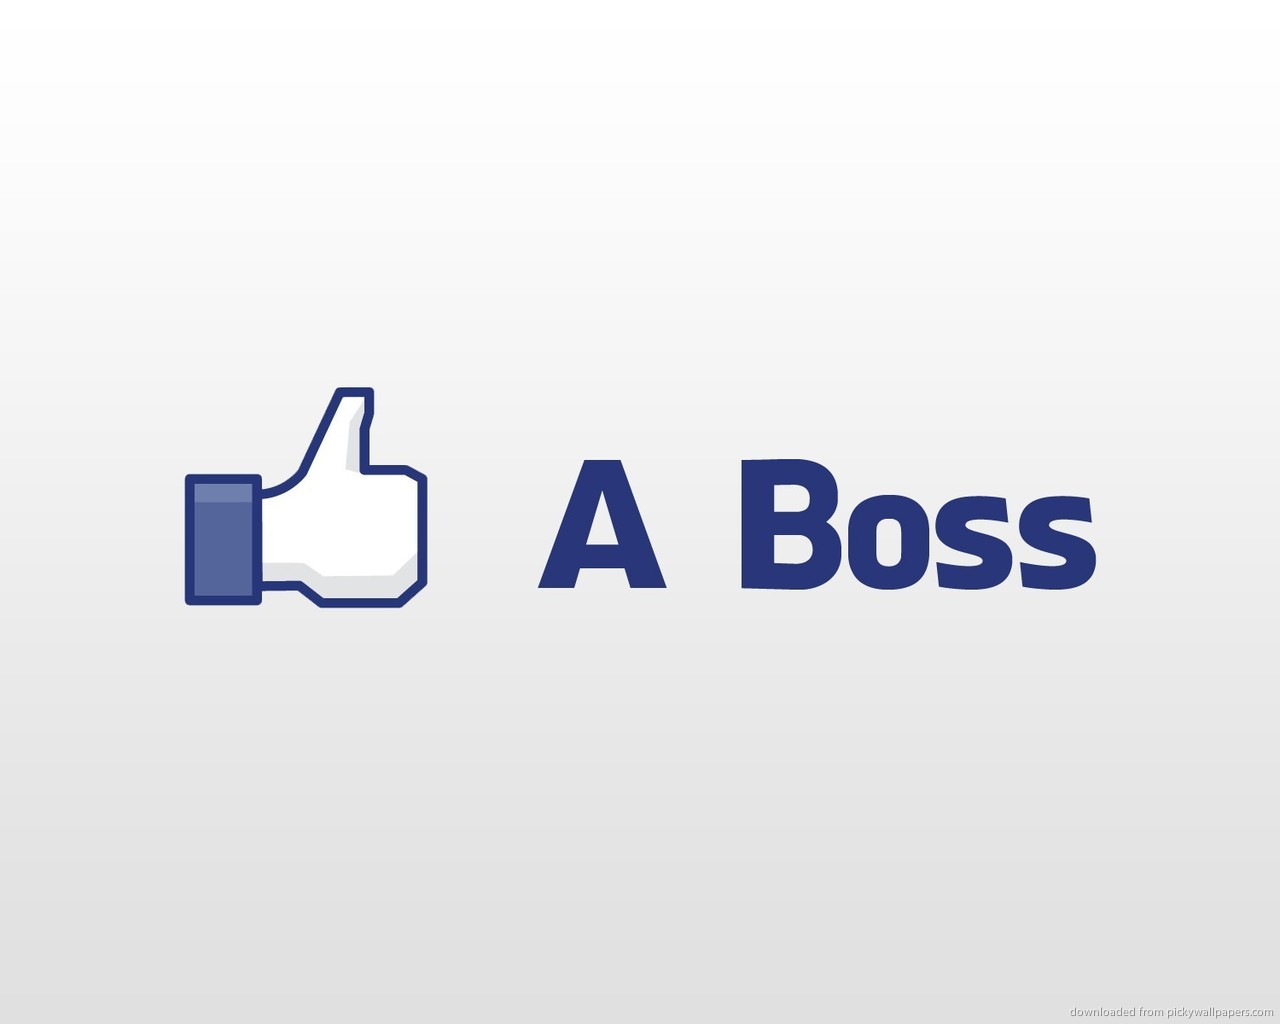 Like a BossLike A Boss Logo Wallpaper